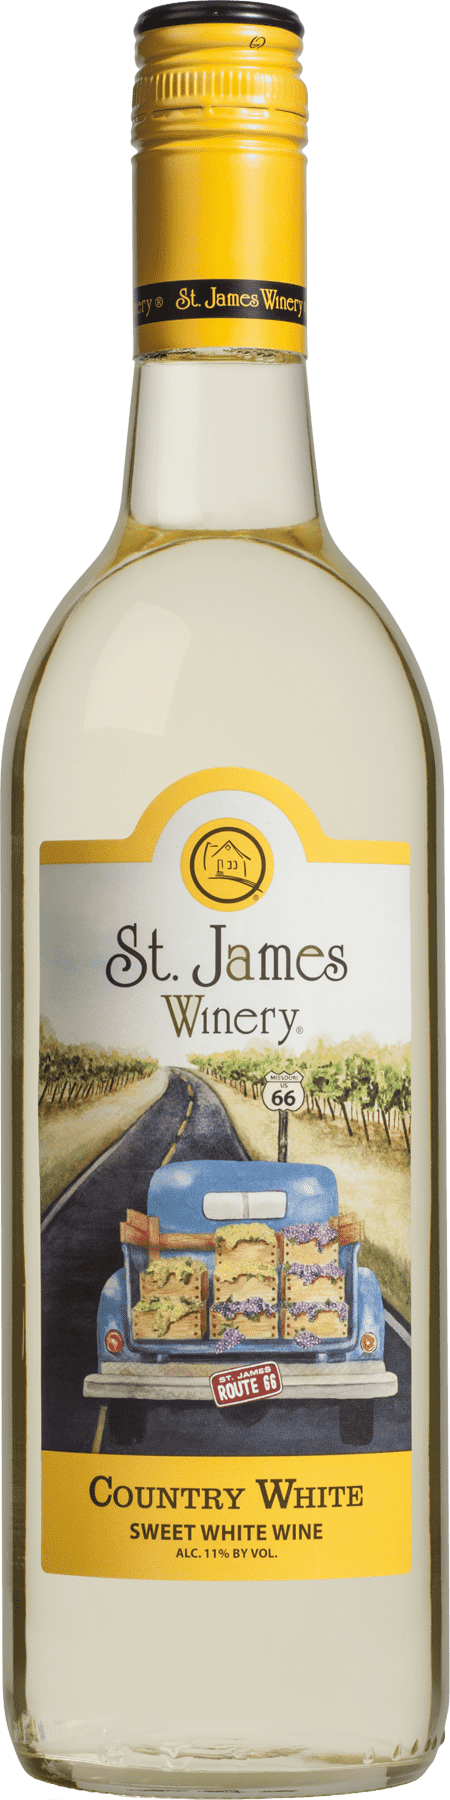 Country White Sweet Wine - St. James Winery Missouri